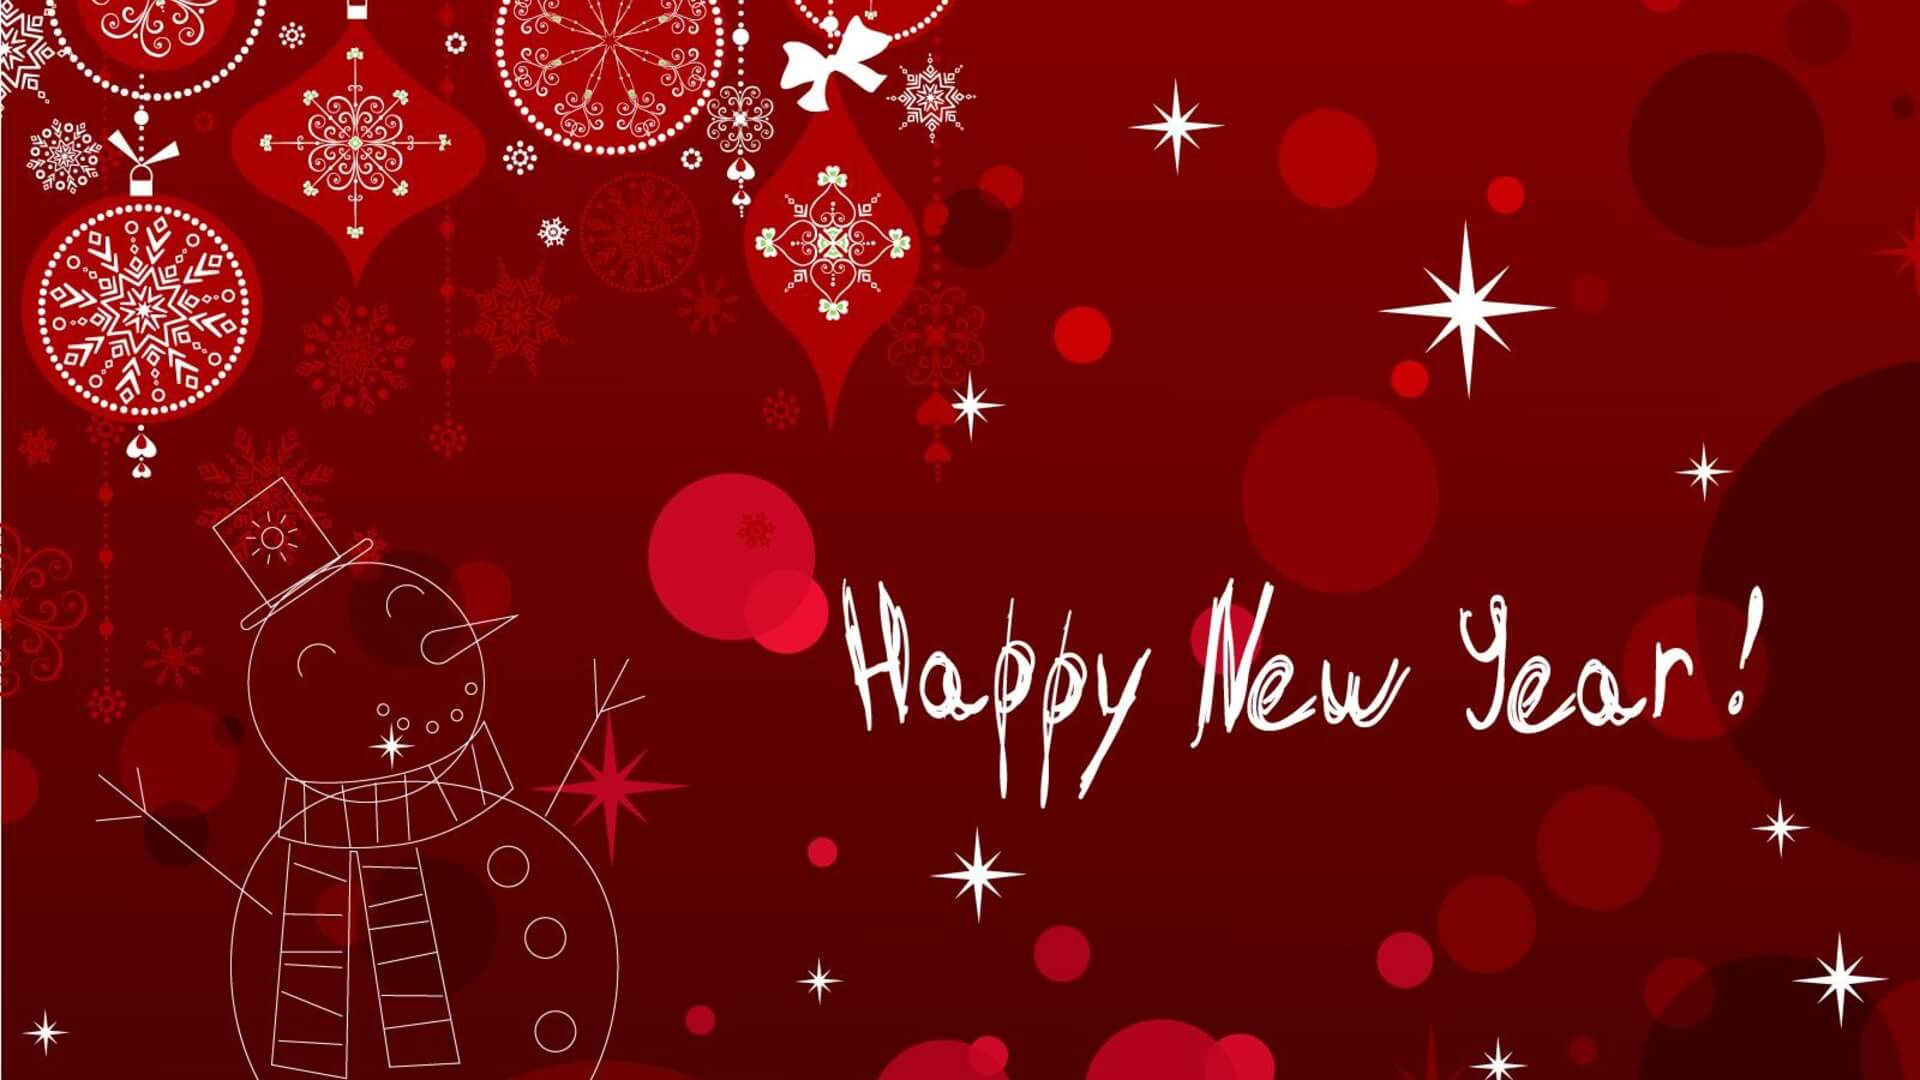 Happy new year wishes quotes sms 2018 ienglish status happy new year wishes quotes sms 2018 kristyandbryce Choice Image